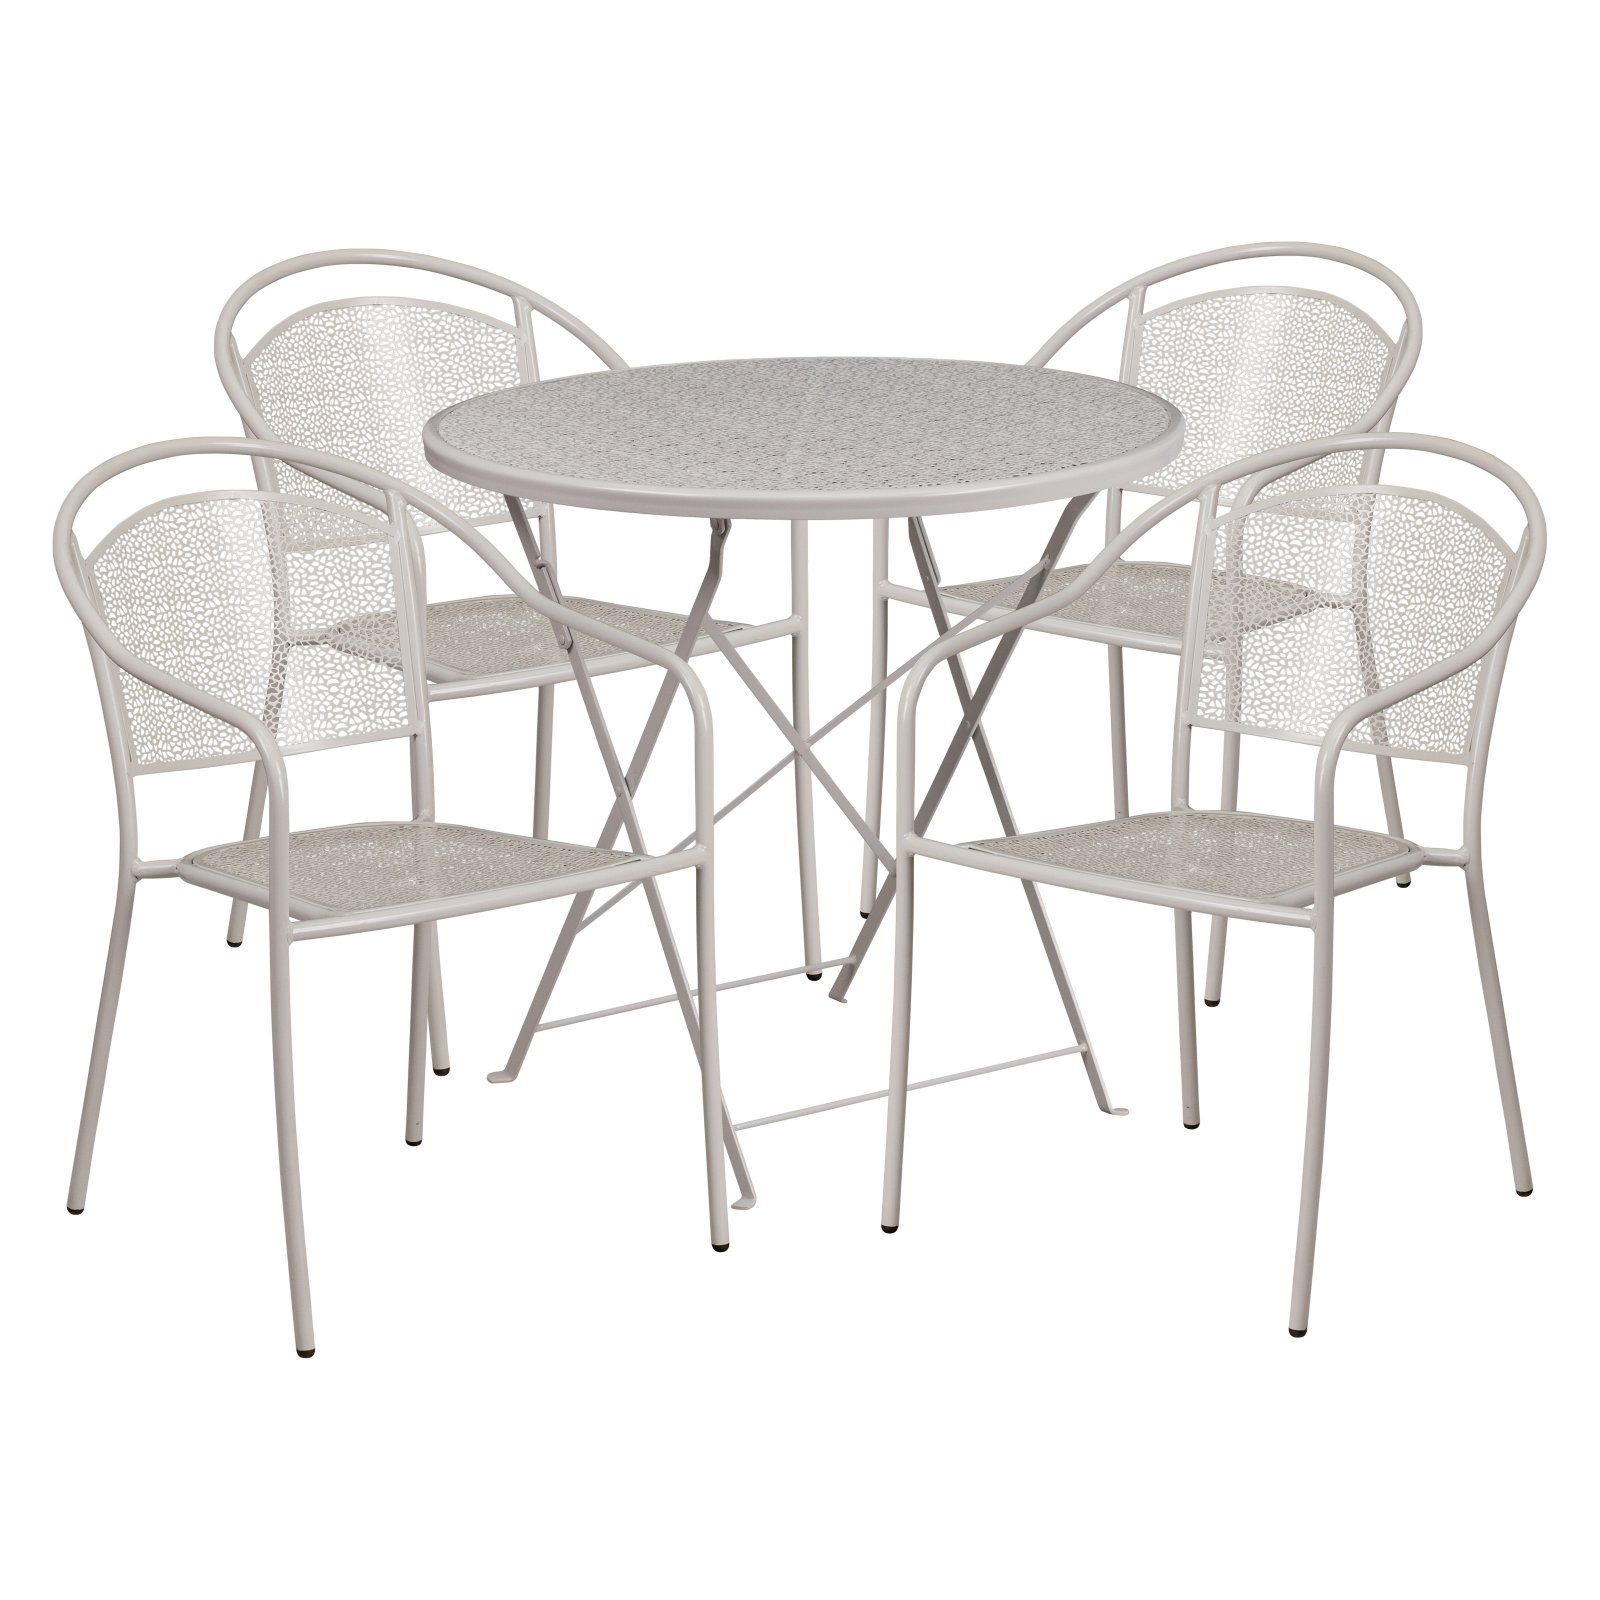 outdoor flash furniture steel round folding patio dining set with rh pinterest com